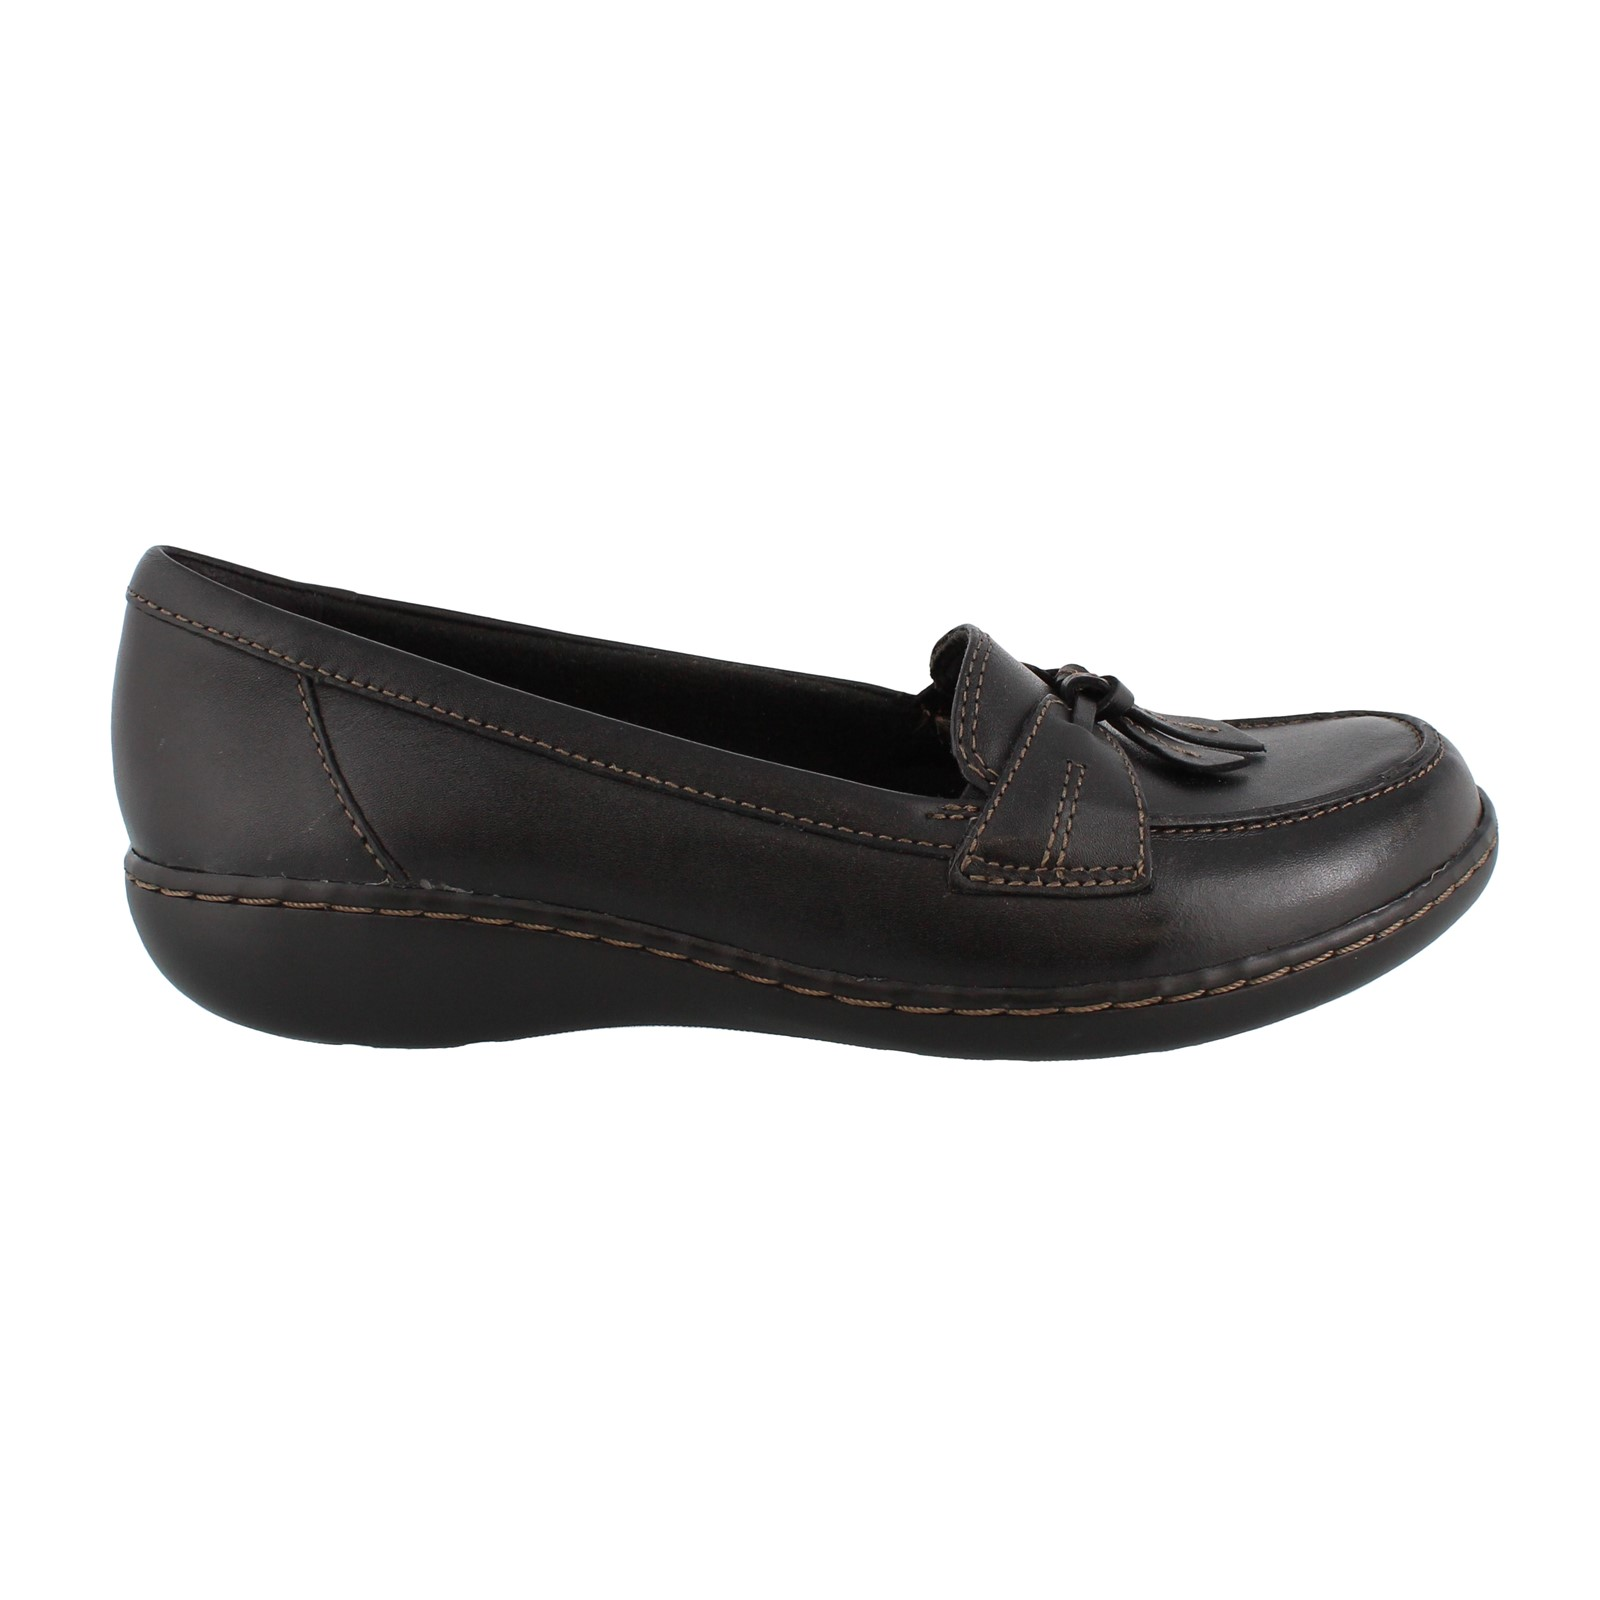 Women's Clarks, Ashland Bubble Slip on Loafers